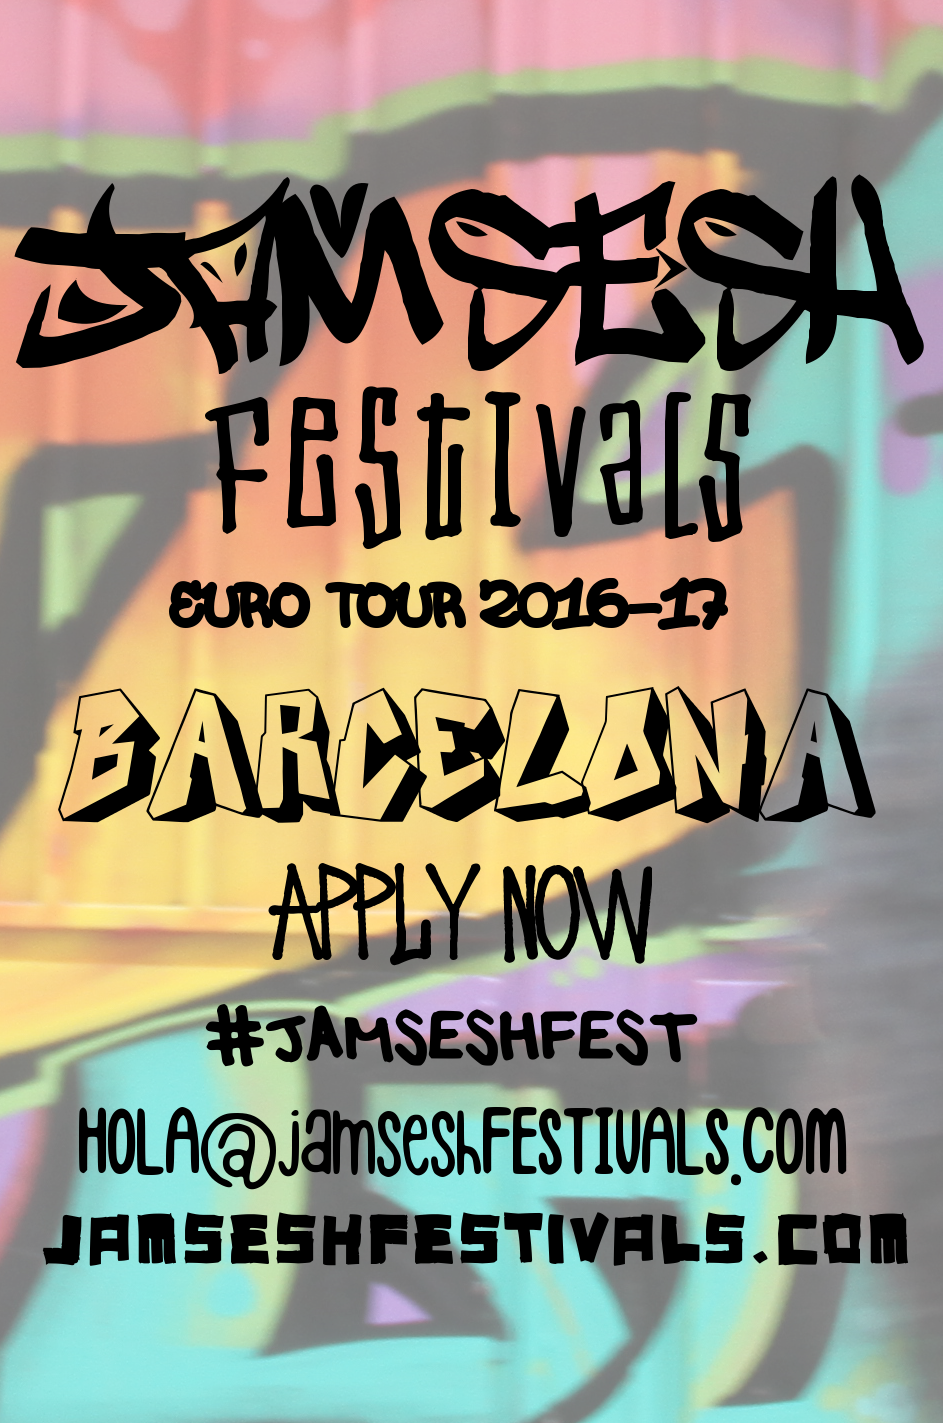 JamSesh Festivals EuroTour'16 Covering 22 Cities In 33 Days #JAMSESHFEST